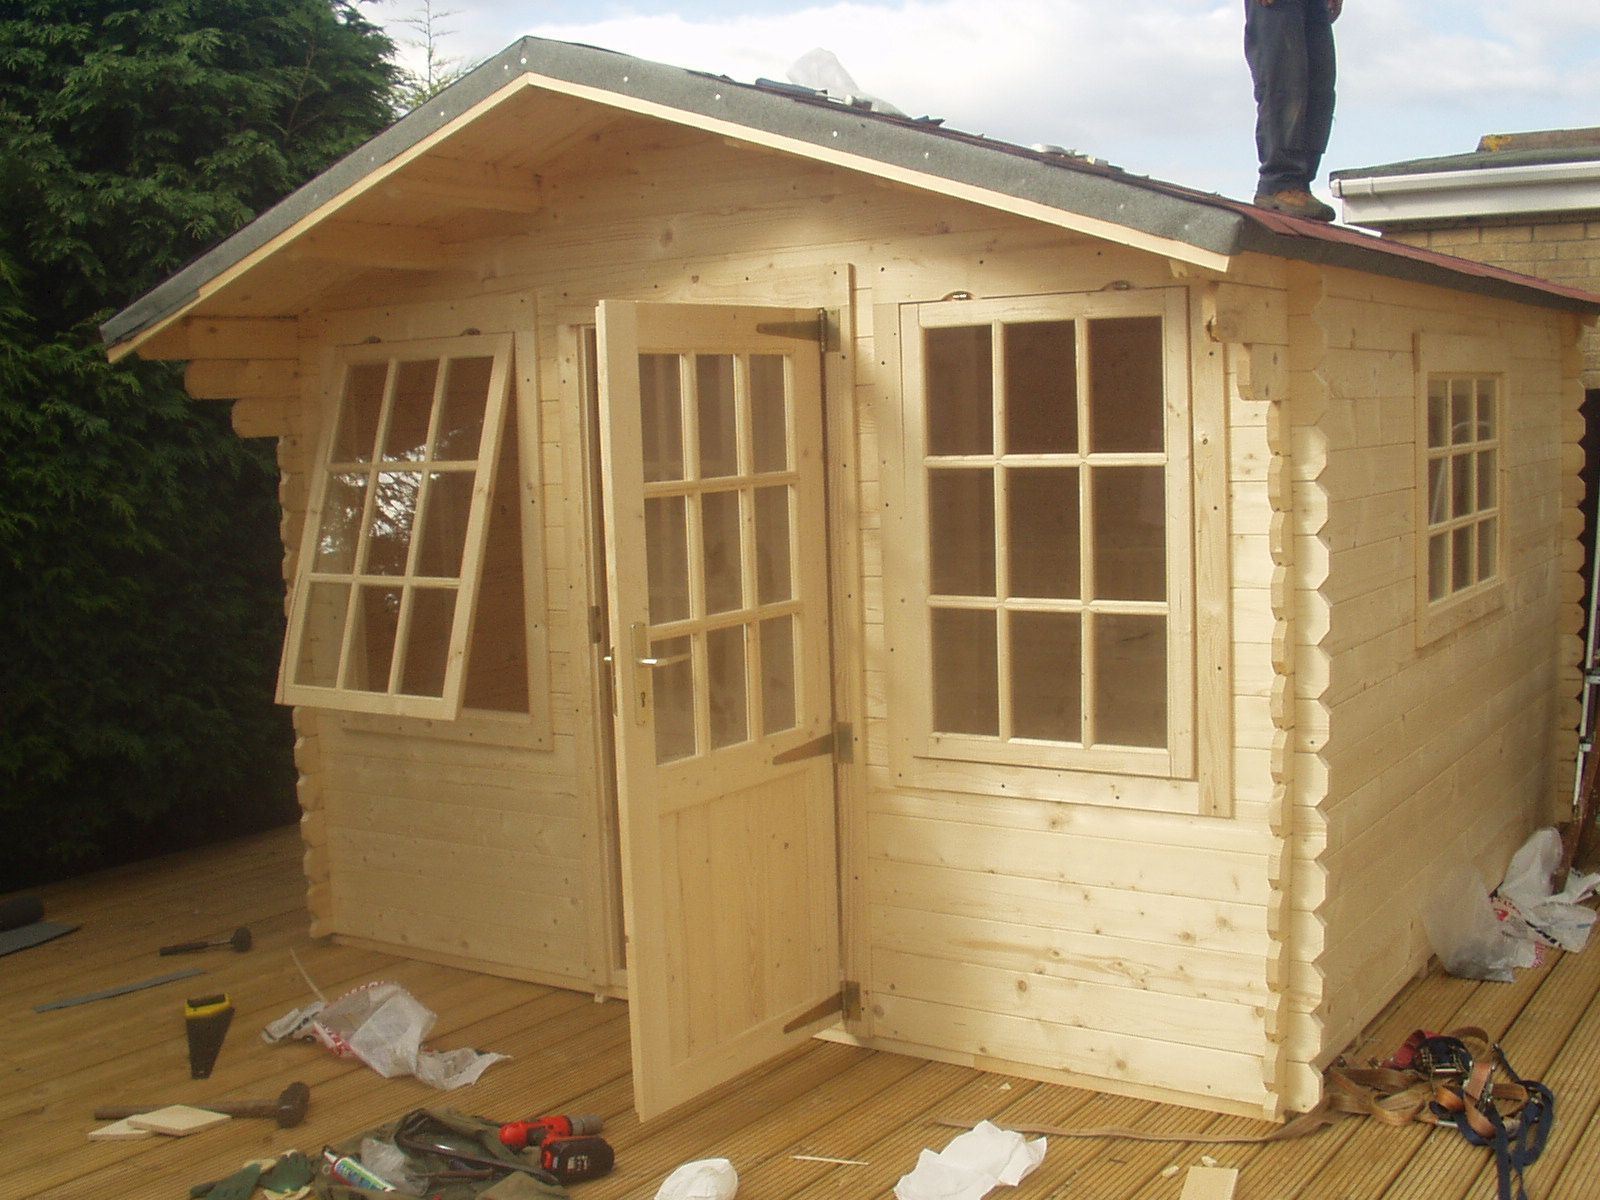 Garden Shed Plans Skipping Any Parts Or Trying To Rush Things In Building Diy Sheds Diyshedlarge Building A Shed Diy Storage Shed Shed Design